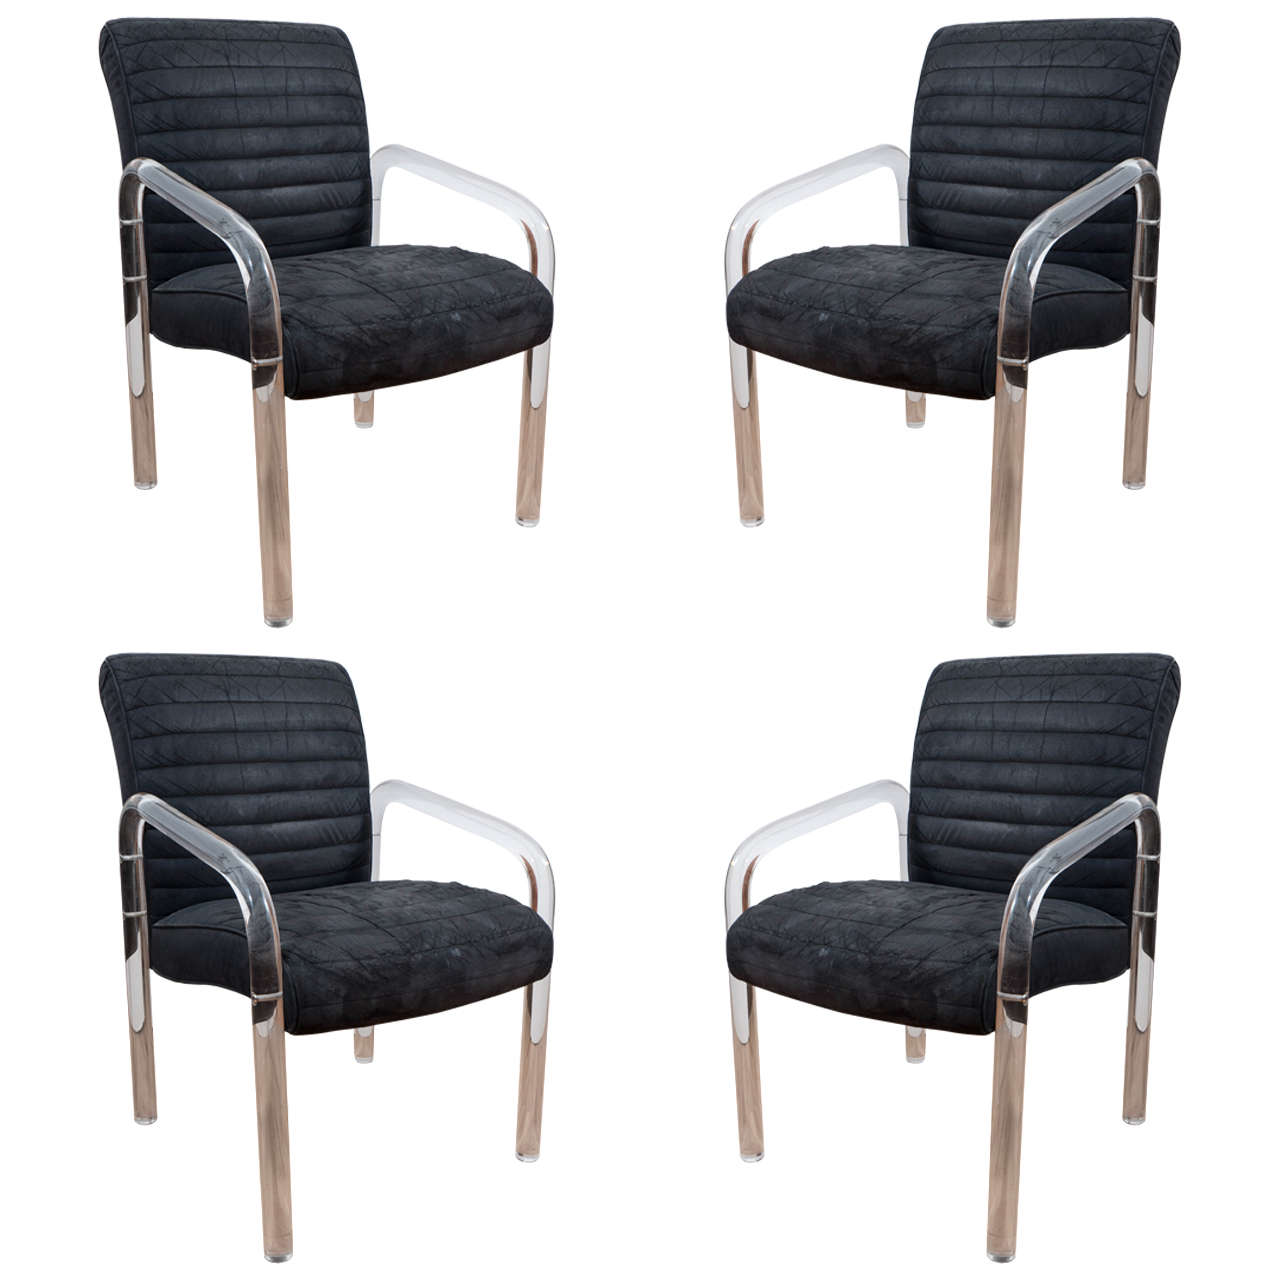 Set of Four Lucite Armchairs with Faux Leather Upholstery by Leon Rosen for Pace